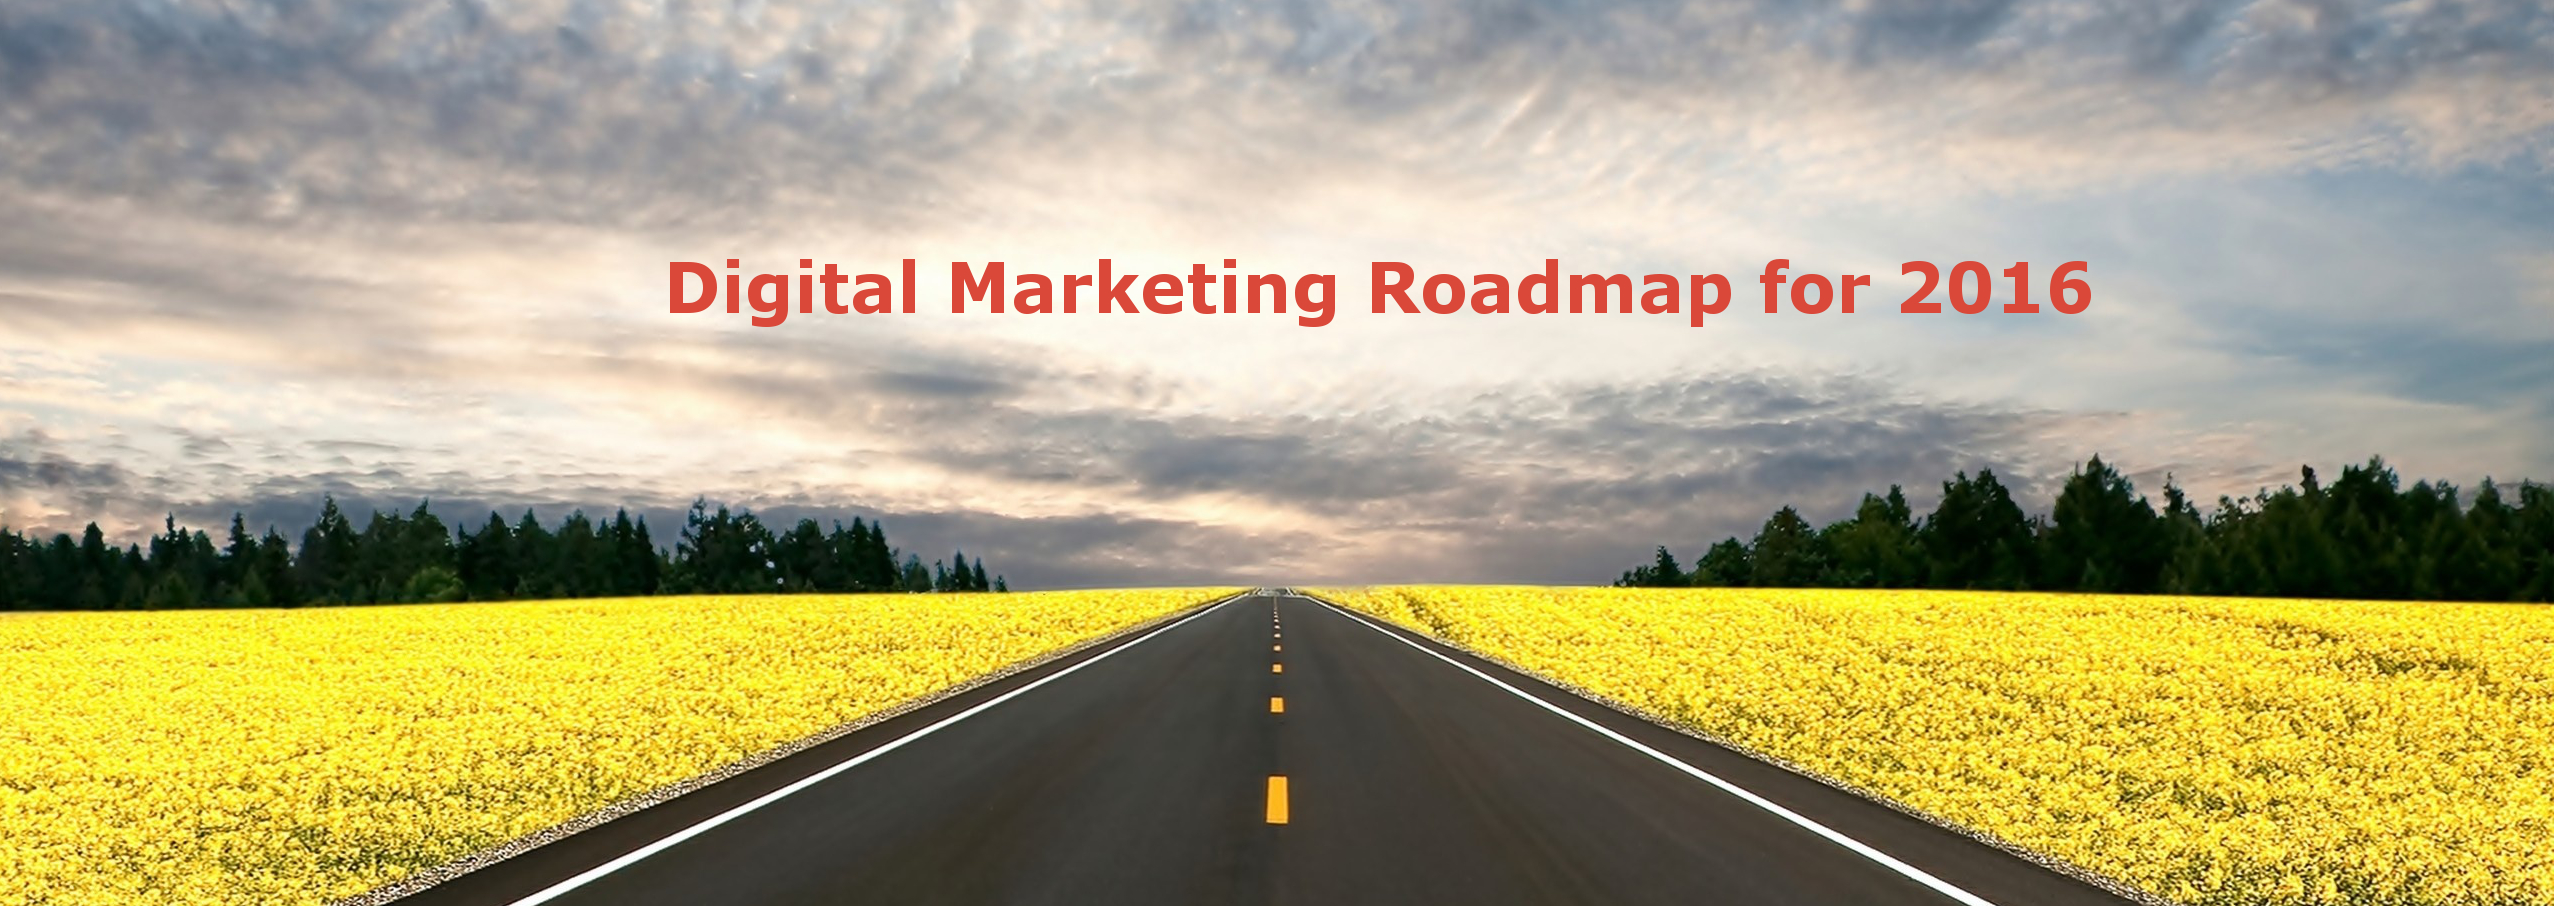 Digital Marketing Roadmap & SEO Strategies 2016